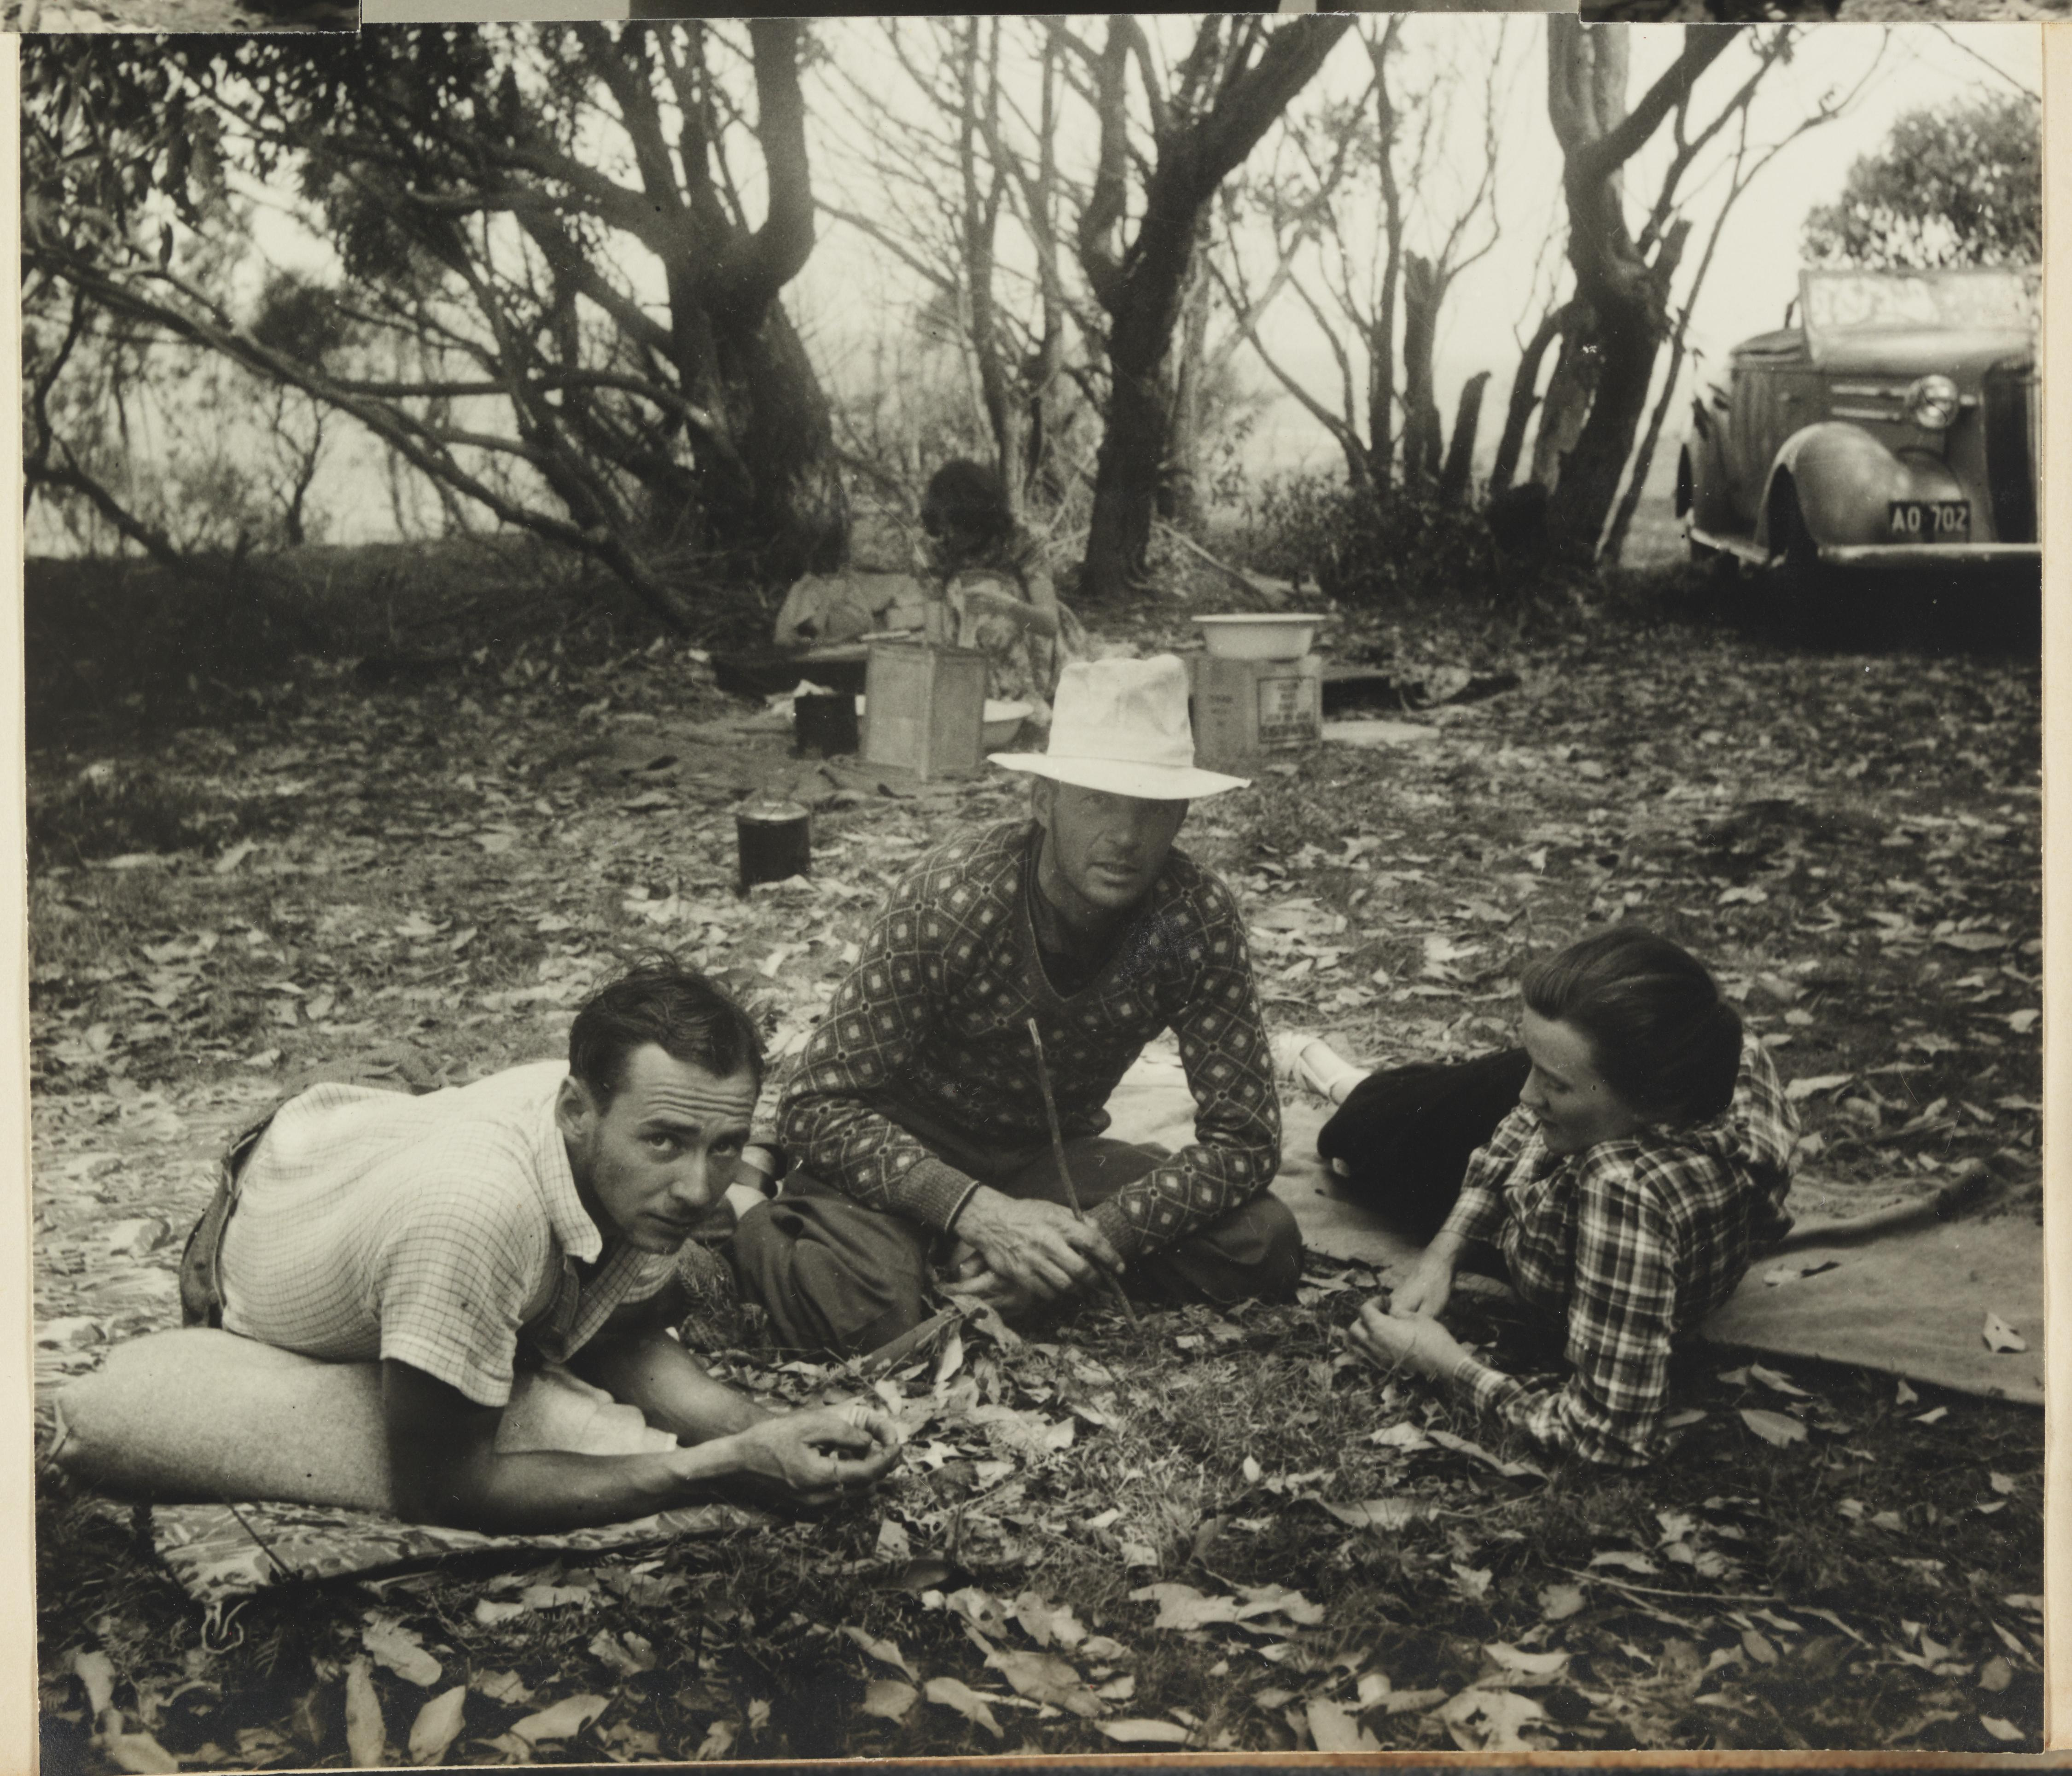 Max Dupain, Chris Vandyke (?) and unidentified woman by Olive Cotton from Camping trips on Culburra Beach by Max Dupain and Olive Cotton